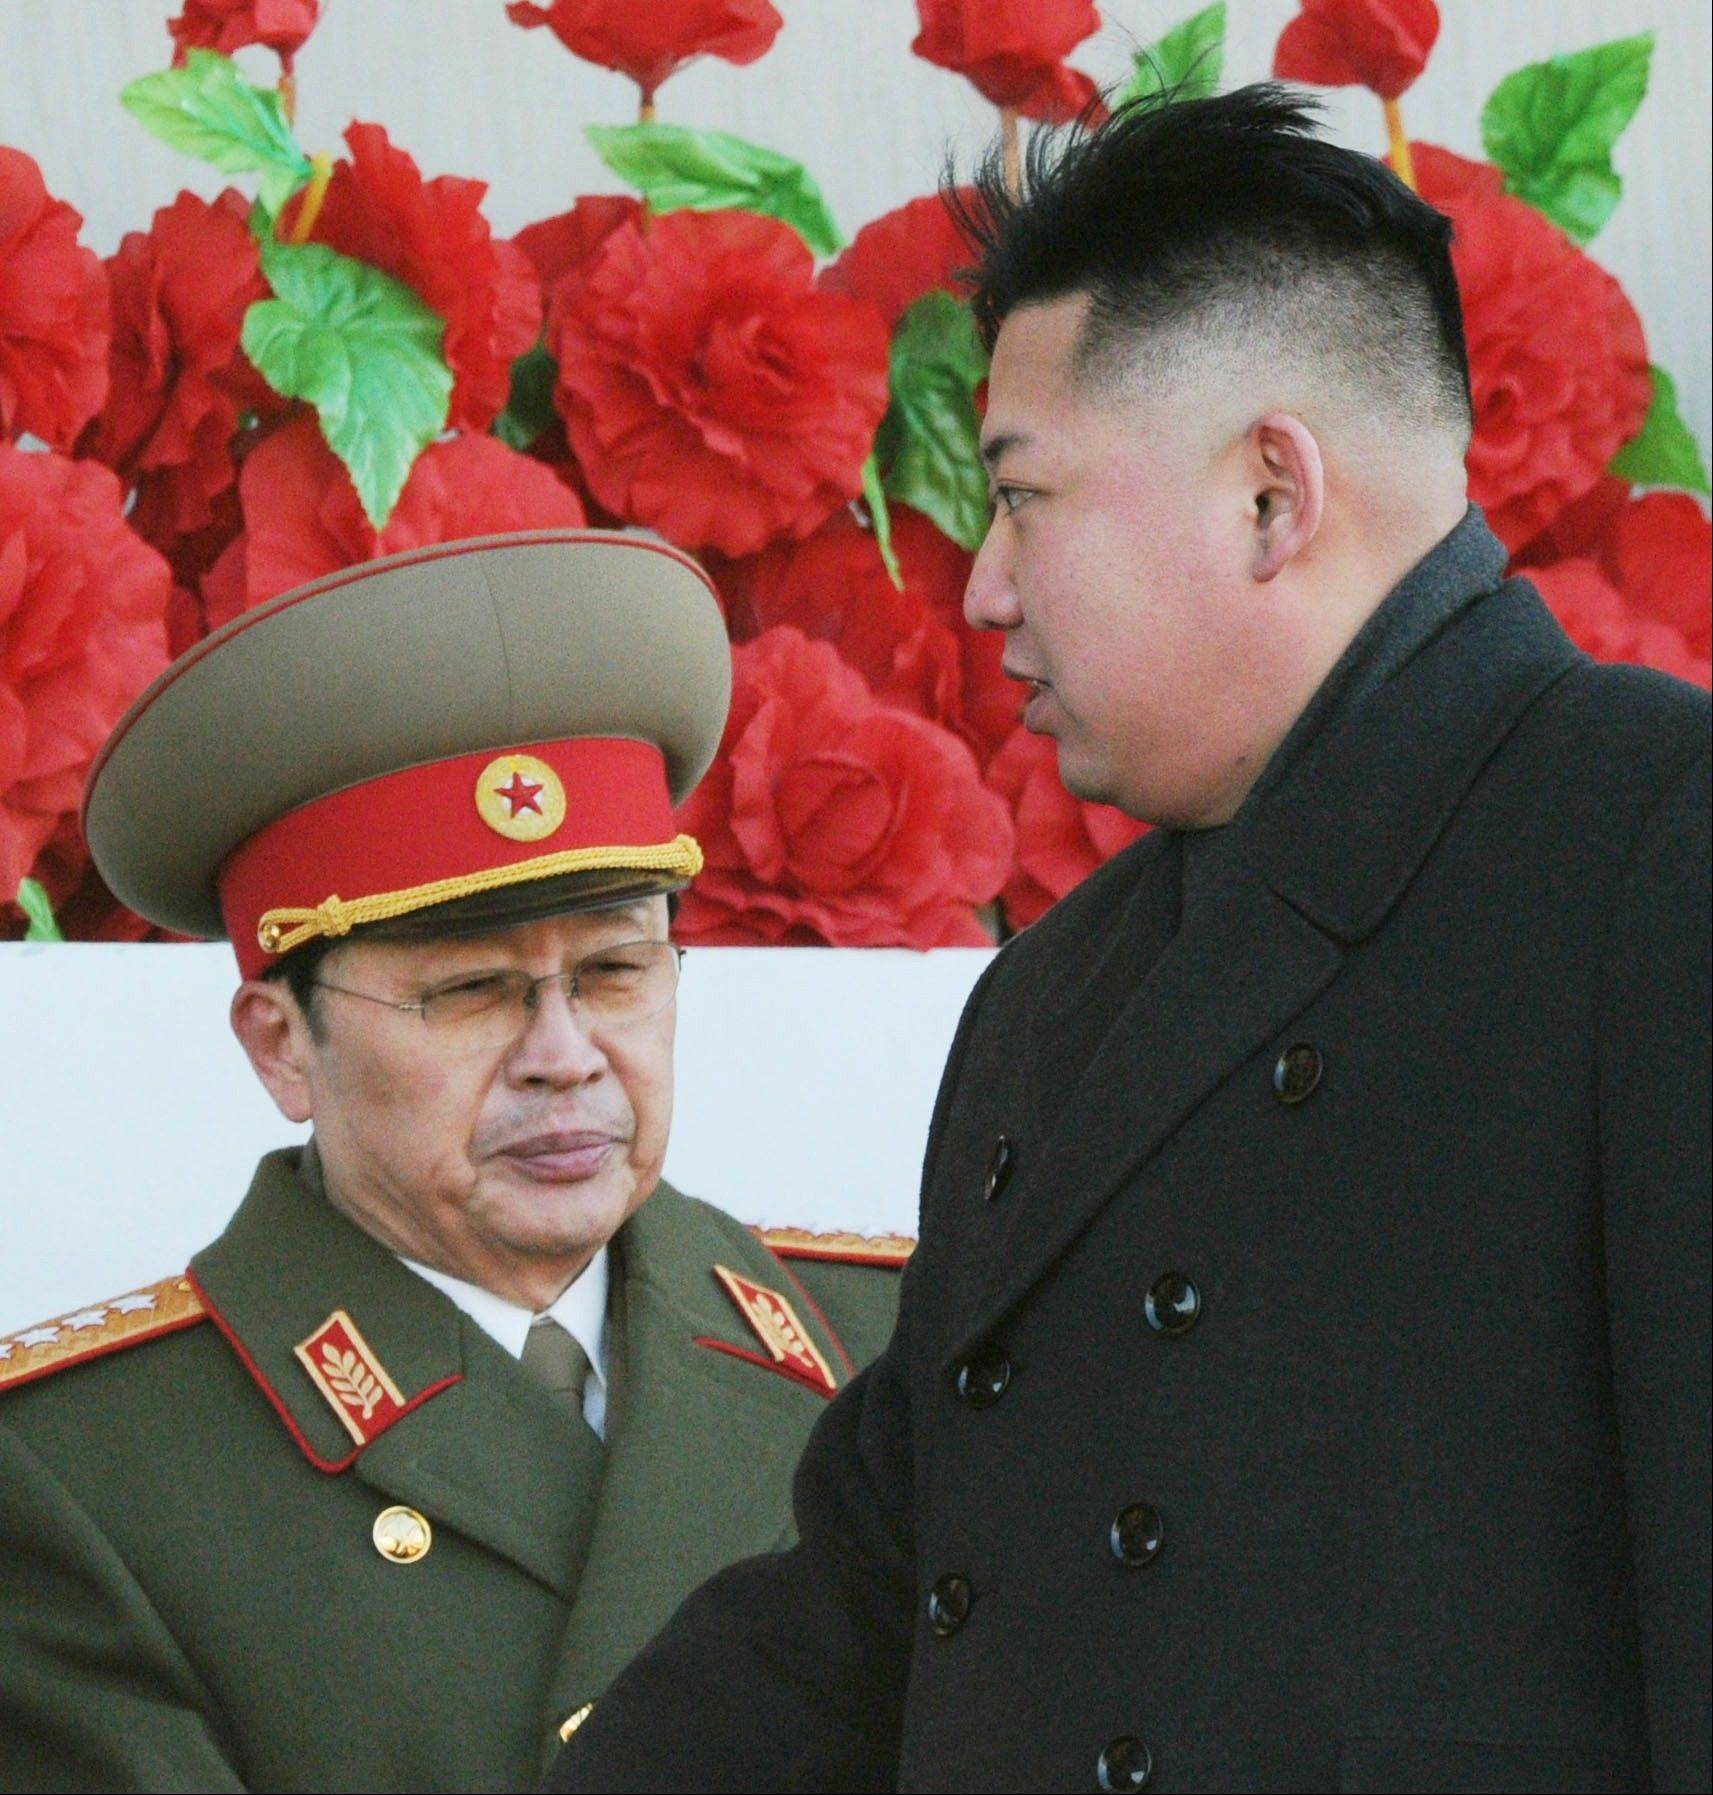 In this Feb. 16, 2012, photo, North Korean leader Kim Jong Un walks past his uncle Jang Song Thaek, left, after reviewing a parade of thousands of soldiers and commemorating the 70th birthday of the late Kim Jong Il in Pyongyang.